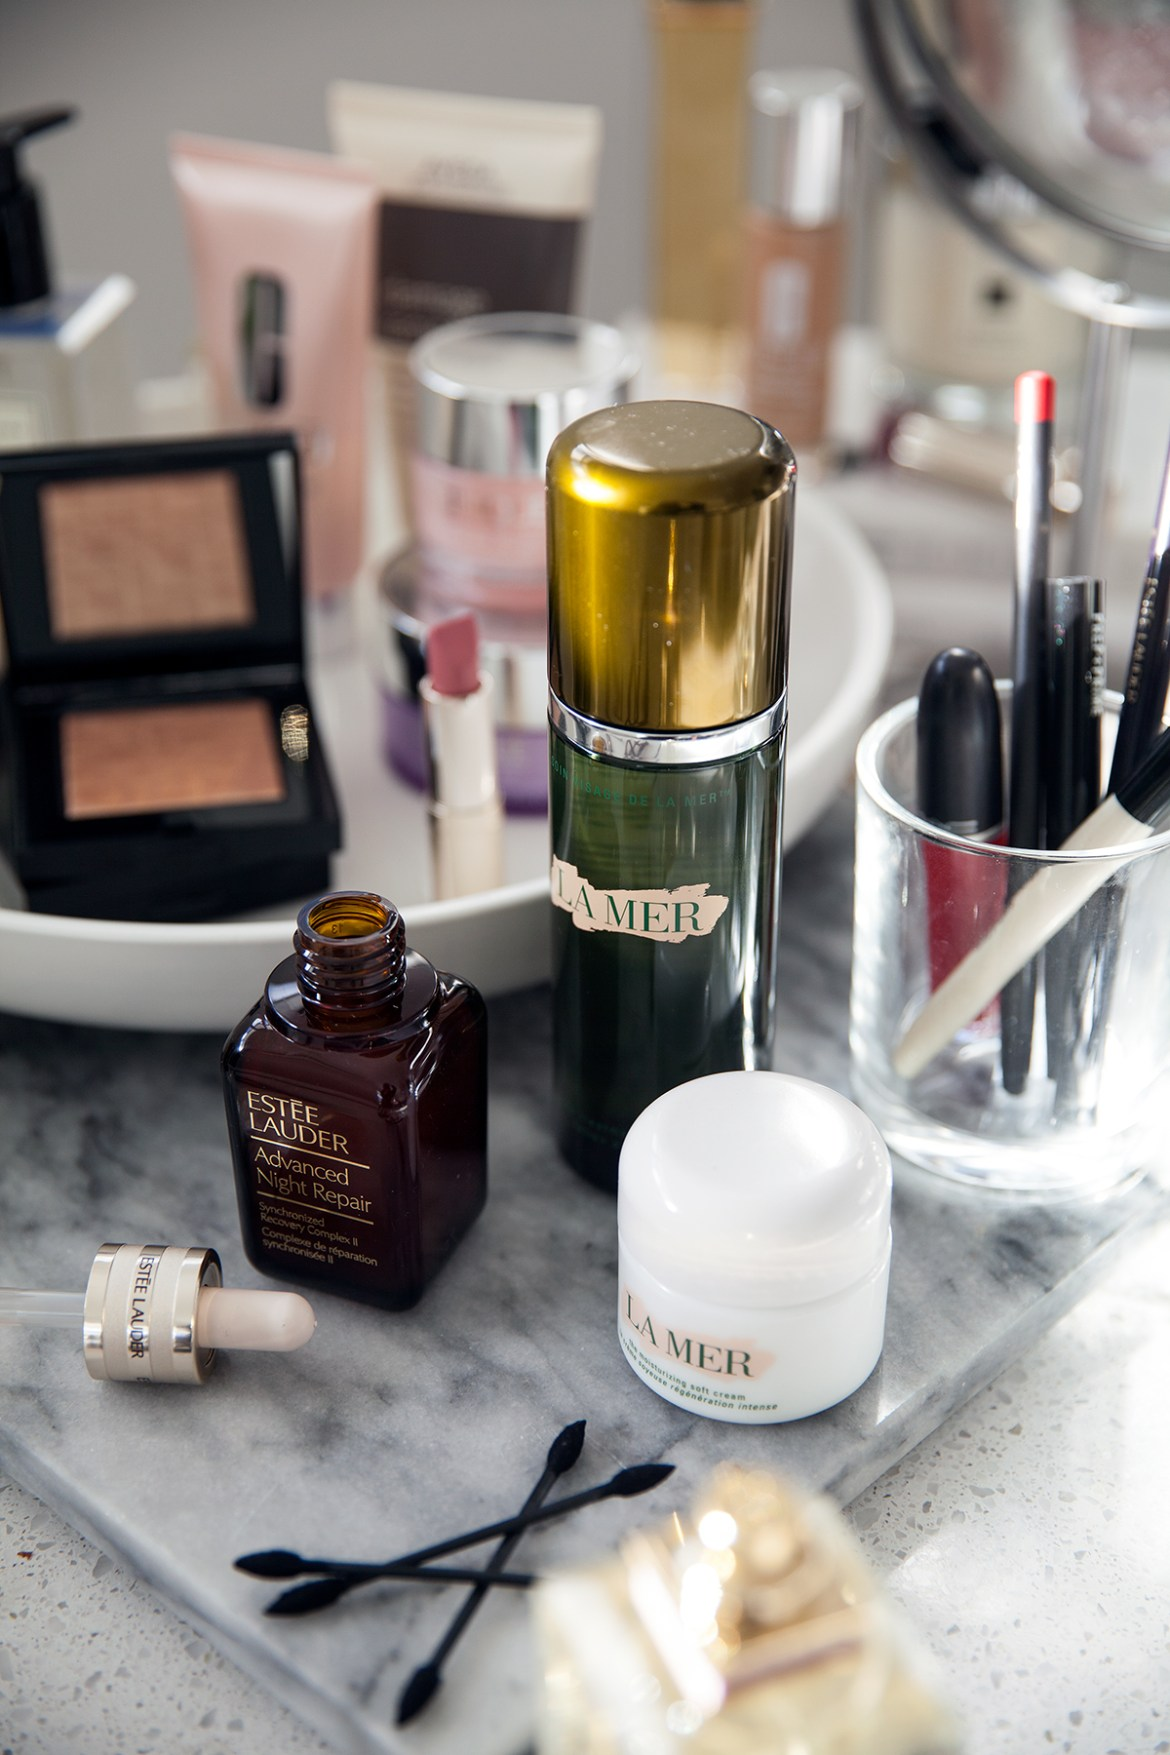 Winter beauty edit by Australian beauty blogger Inspiring Wit featuring La Mer and Estee Lauder